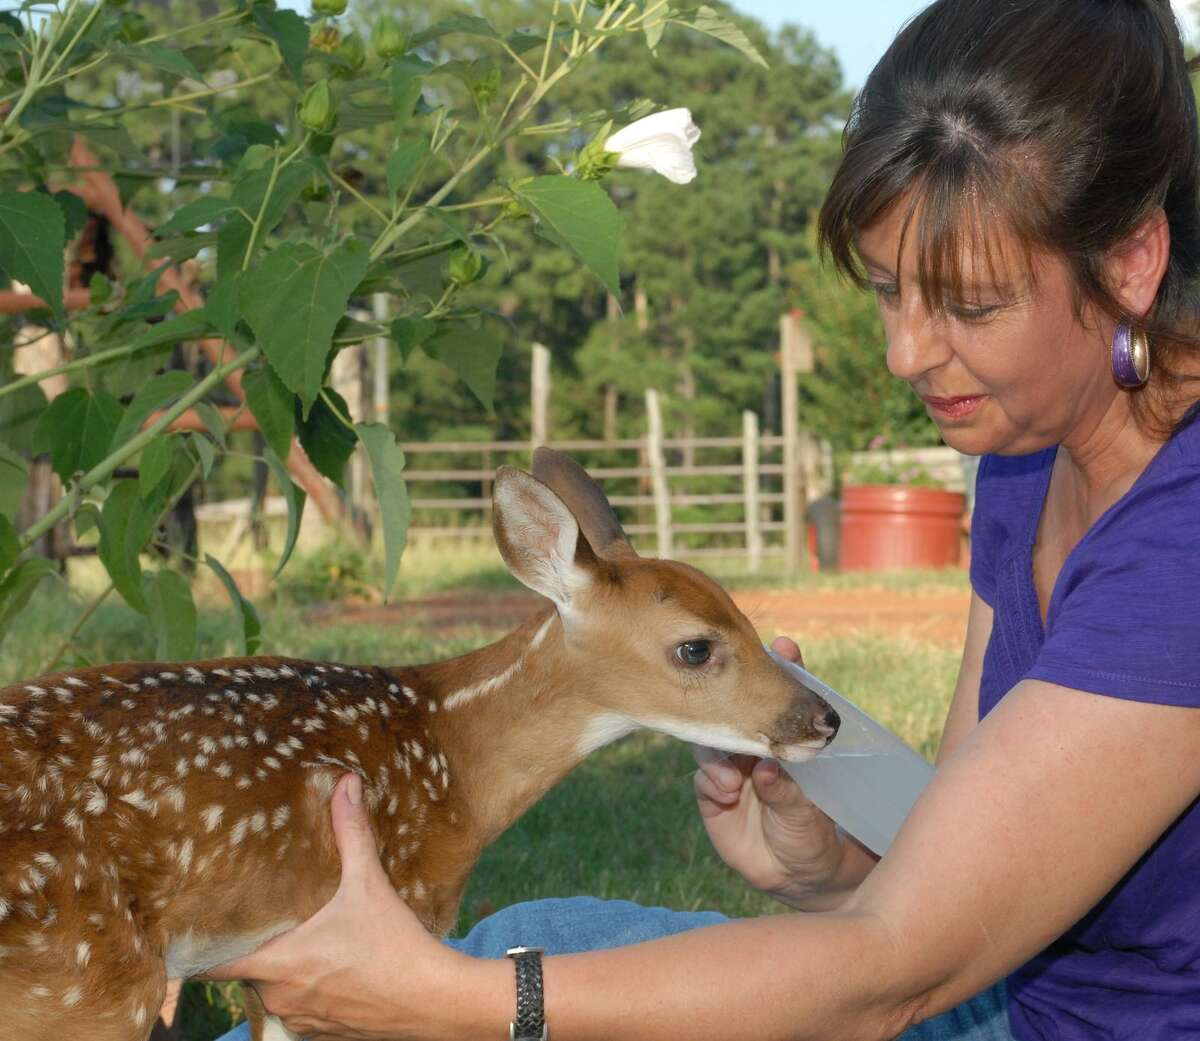 Each year, hundreds of perfectly healthy fawns wrongfully plucked from the wild by well-meaning individuals are referred to volunteer wildlife rehabilitators who are already strapped for time, and funds, tending injured animals in need of help.